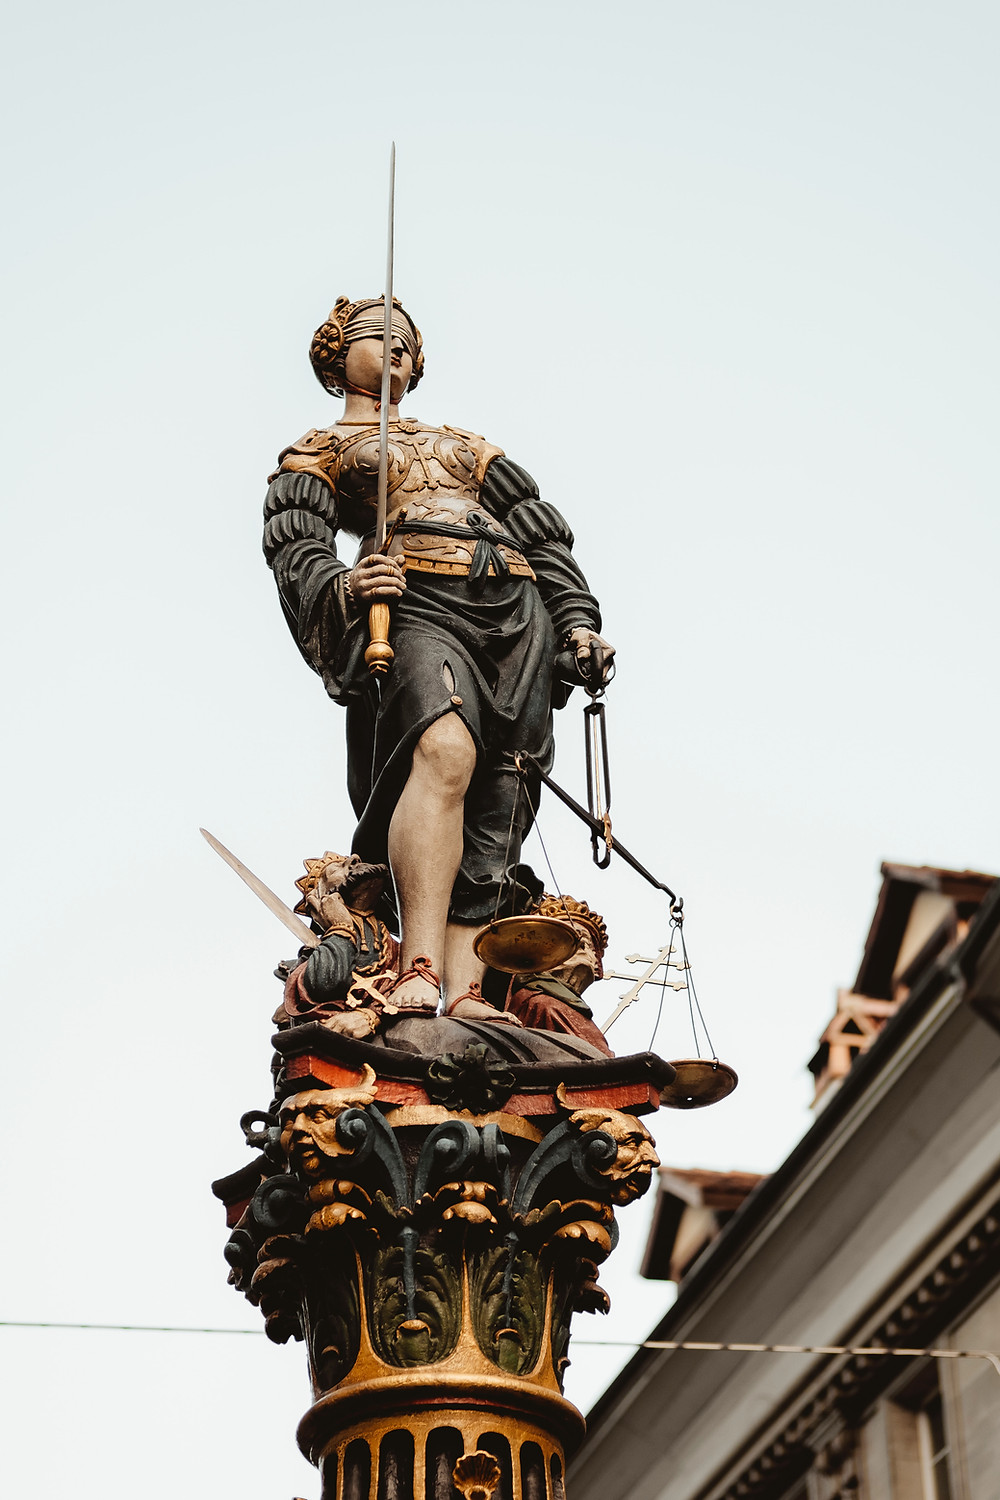 justice blindfolded holding a sword and scale